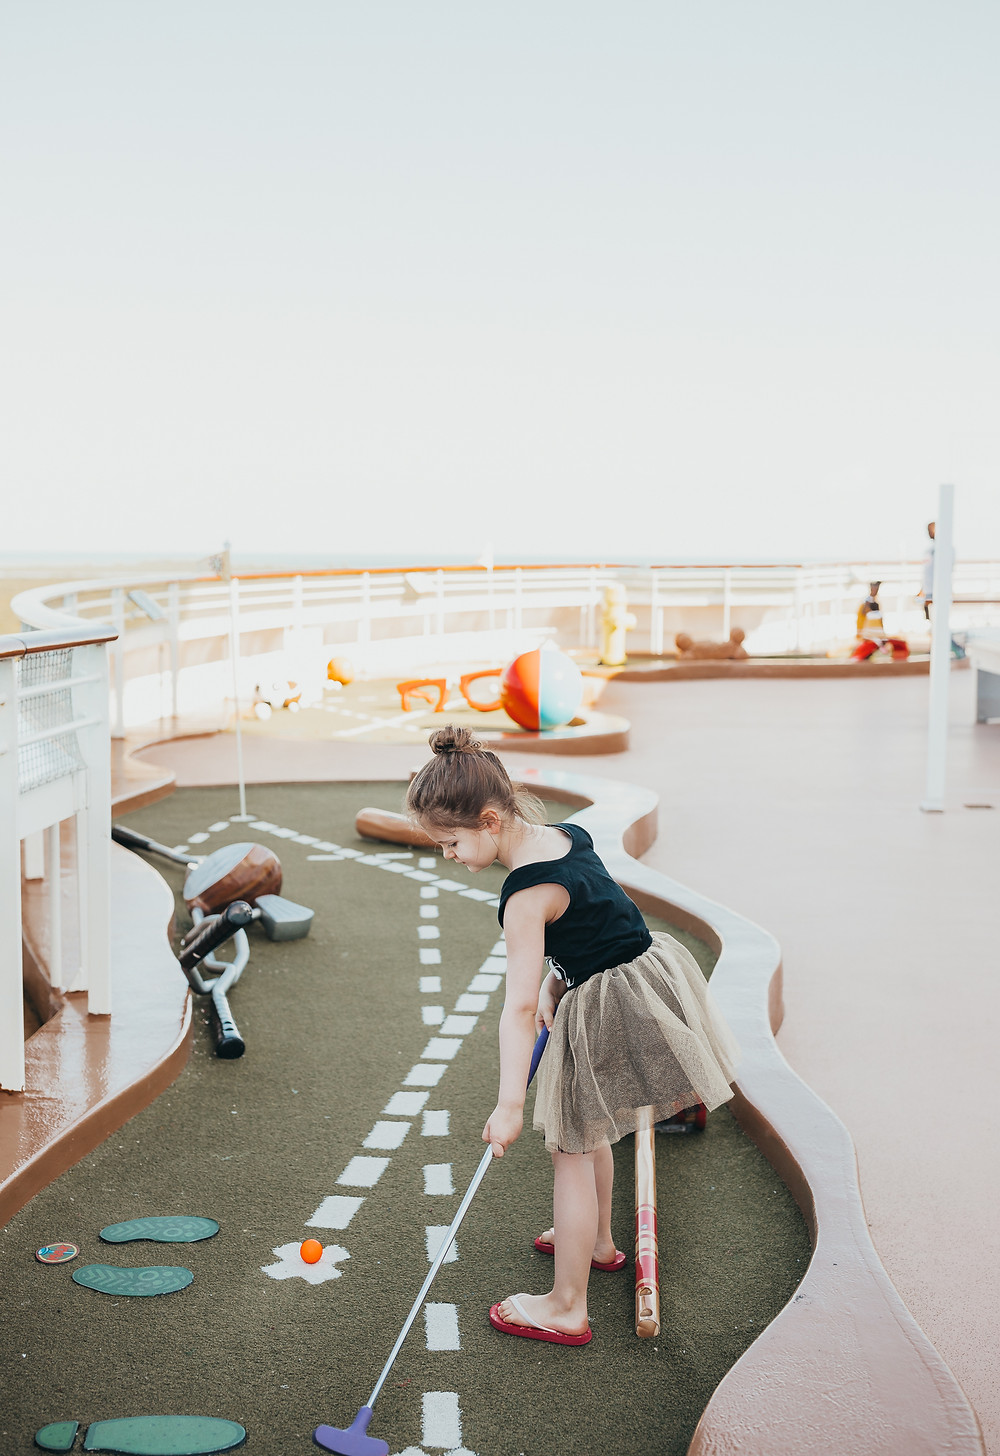 A little girl playing mini golf outside on a Disney Cruise ship.